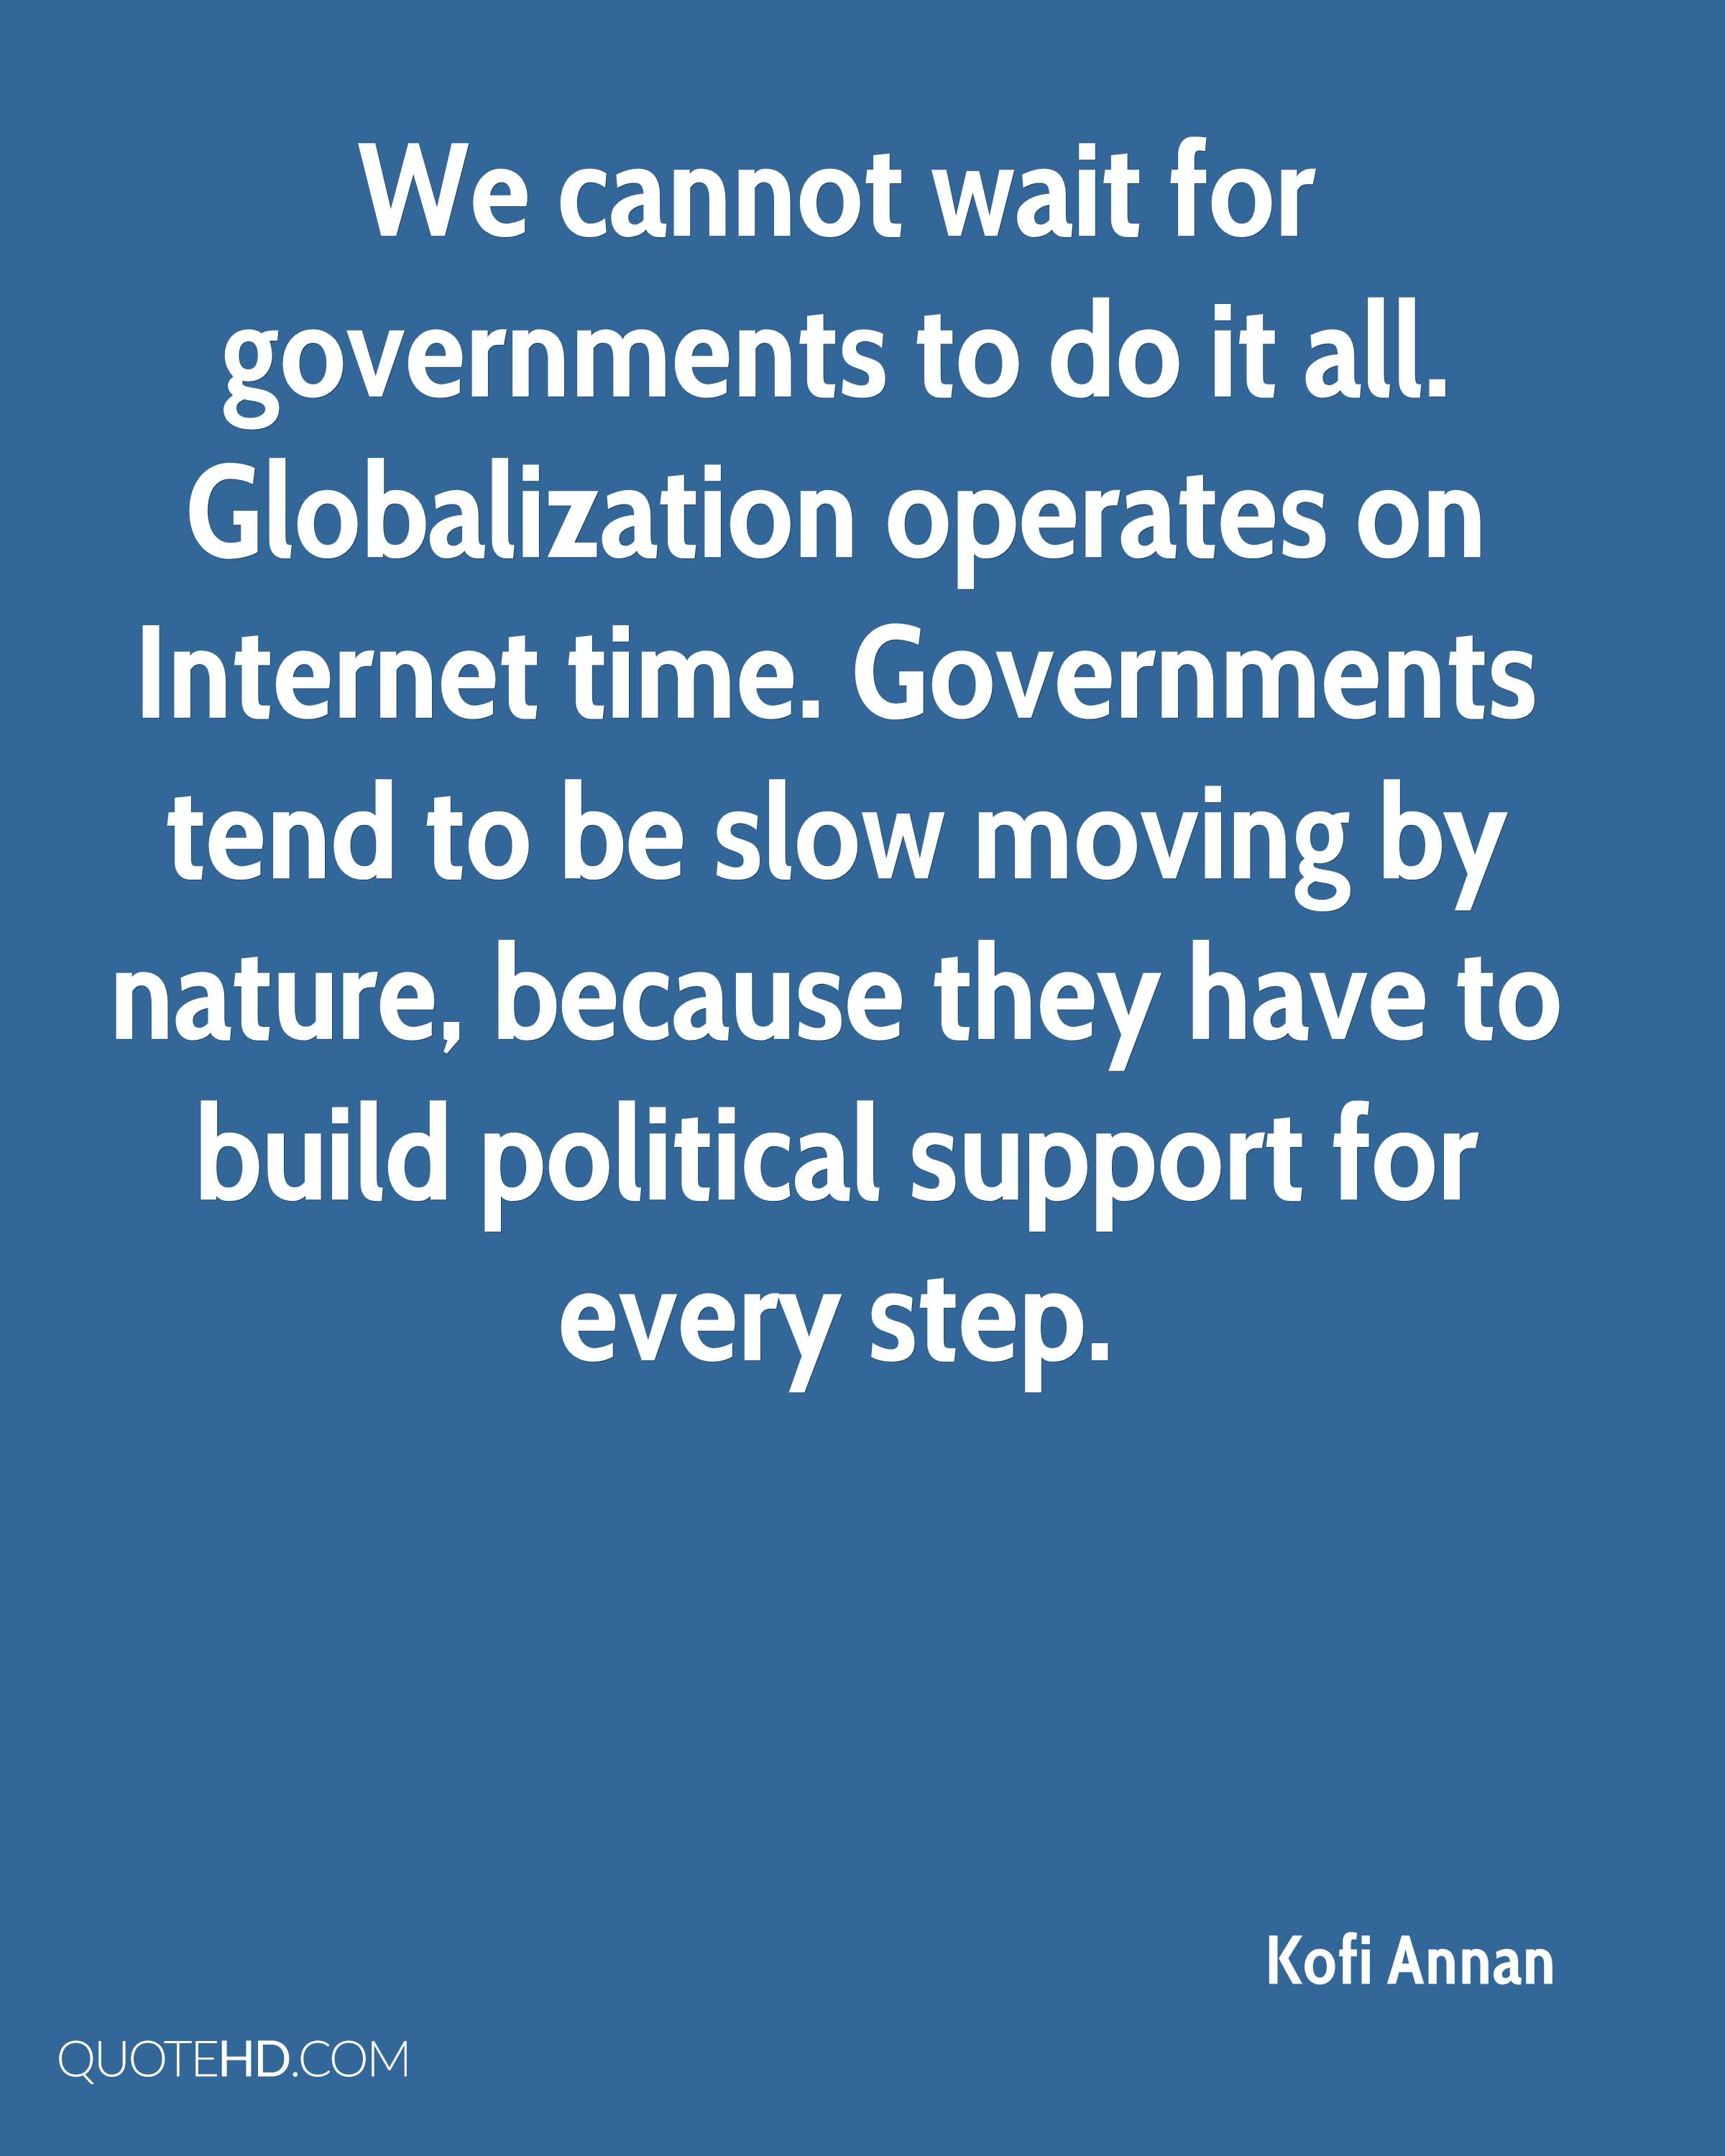 We cannot wait for governments to do it all. Globalization operates on Internet time. Governments tend to be slow moving by nature, because they have to build political support for every step.